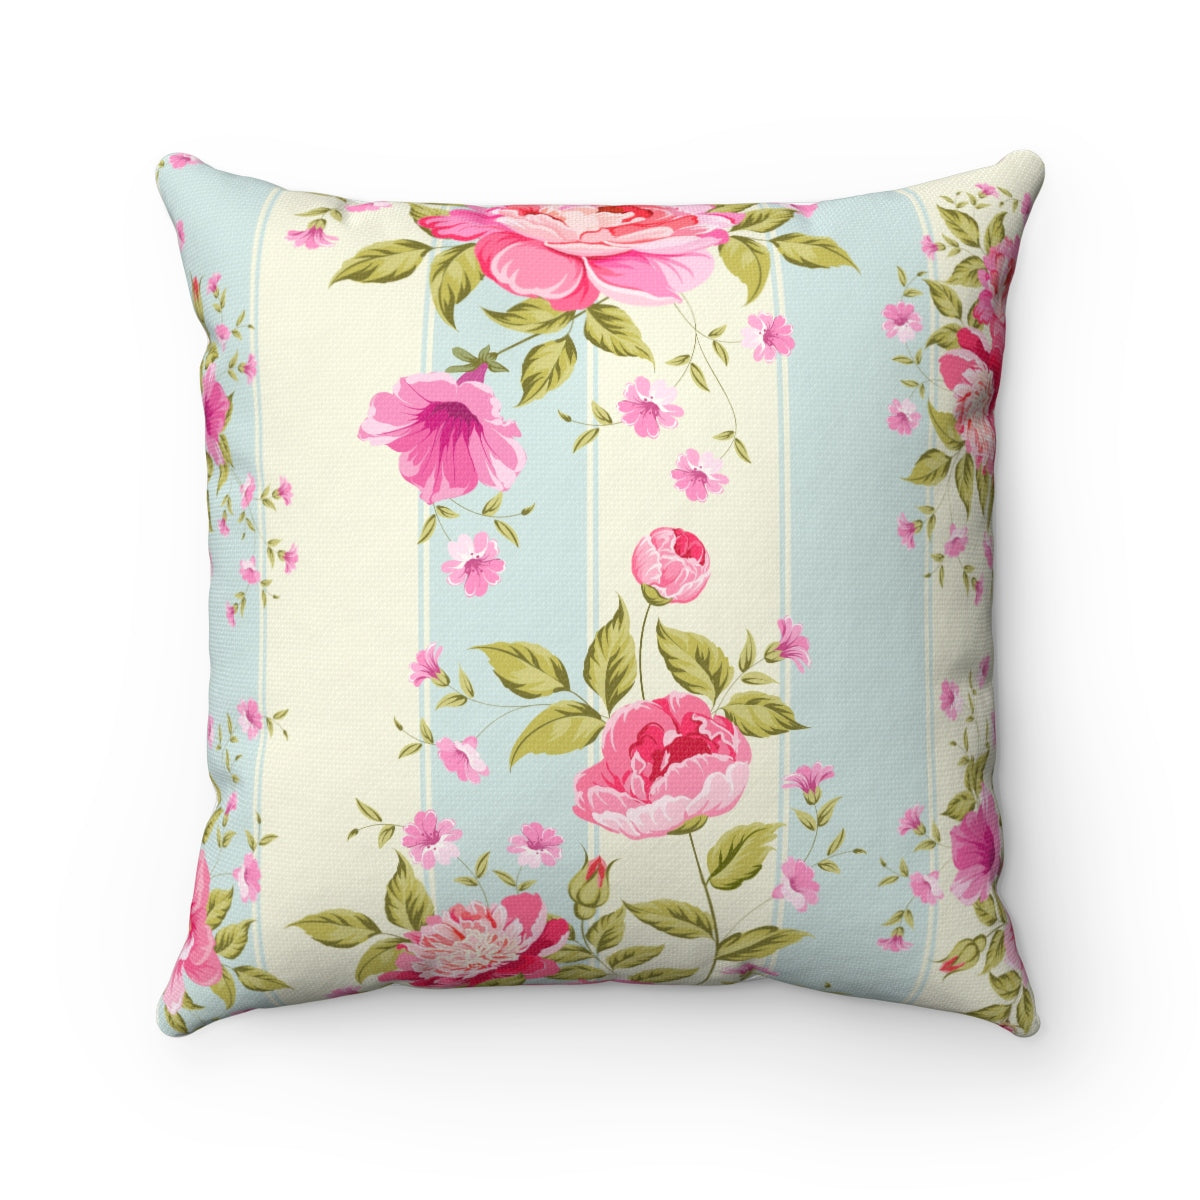 Vintage Pink Floral Decorative Throw Pillow Snapdragon Home